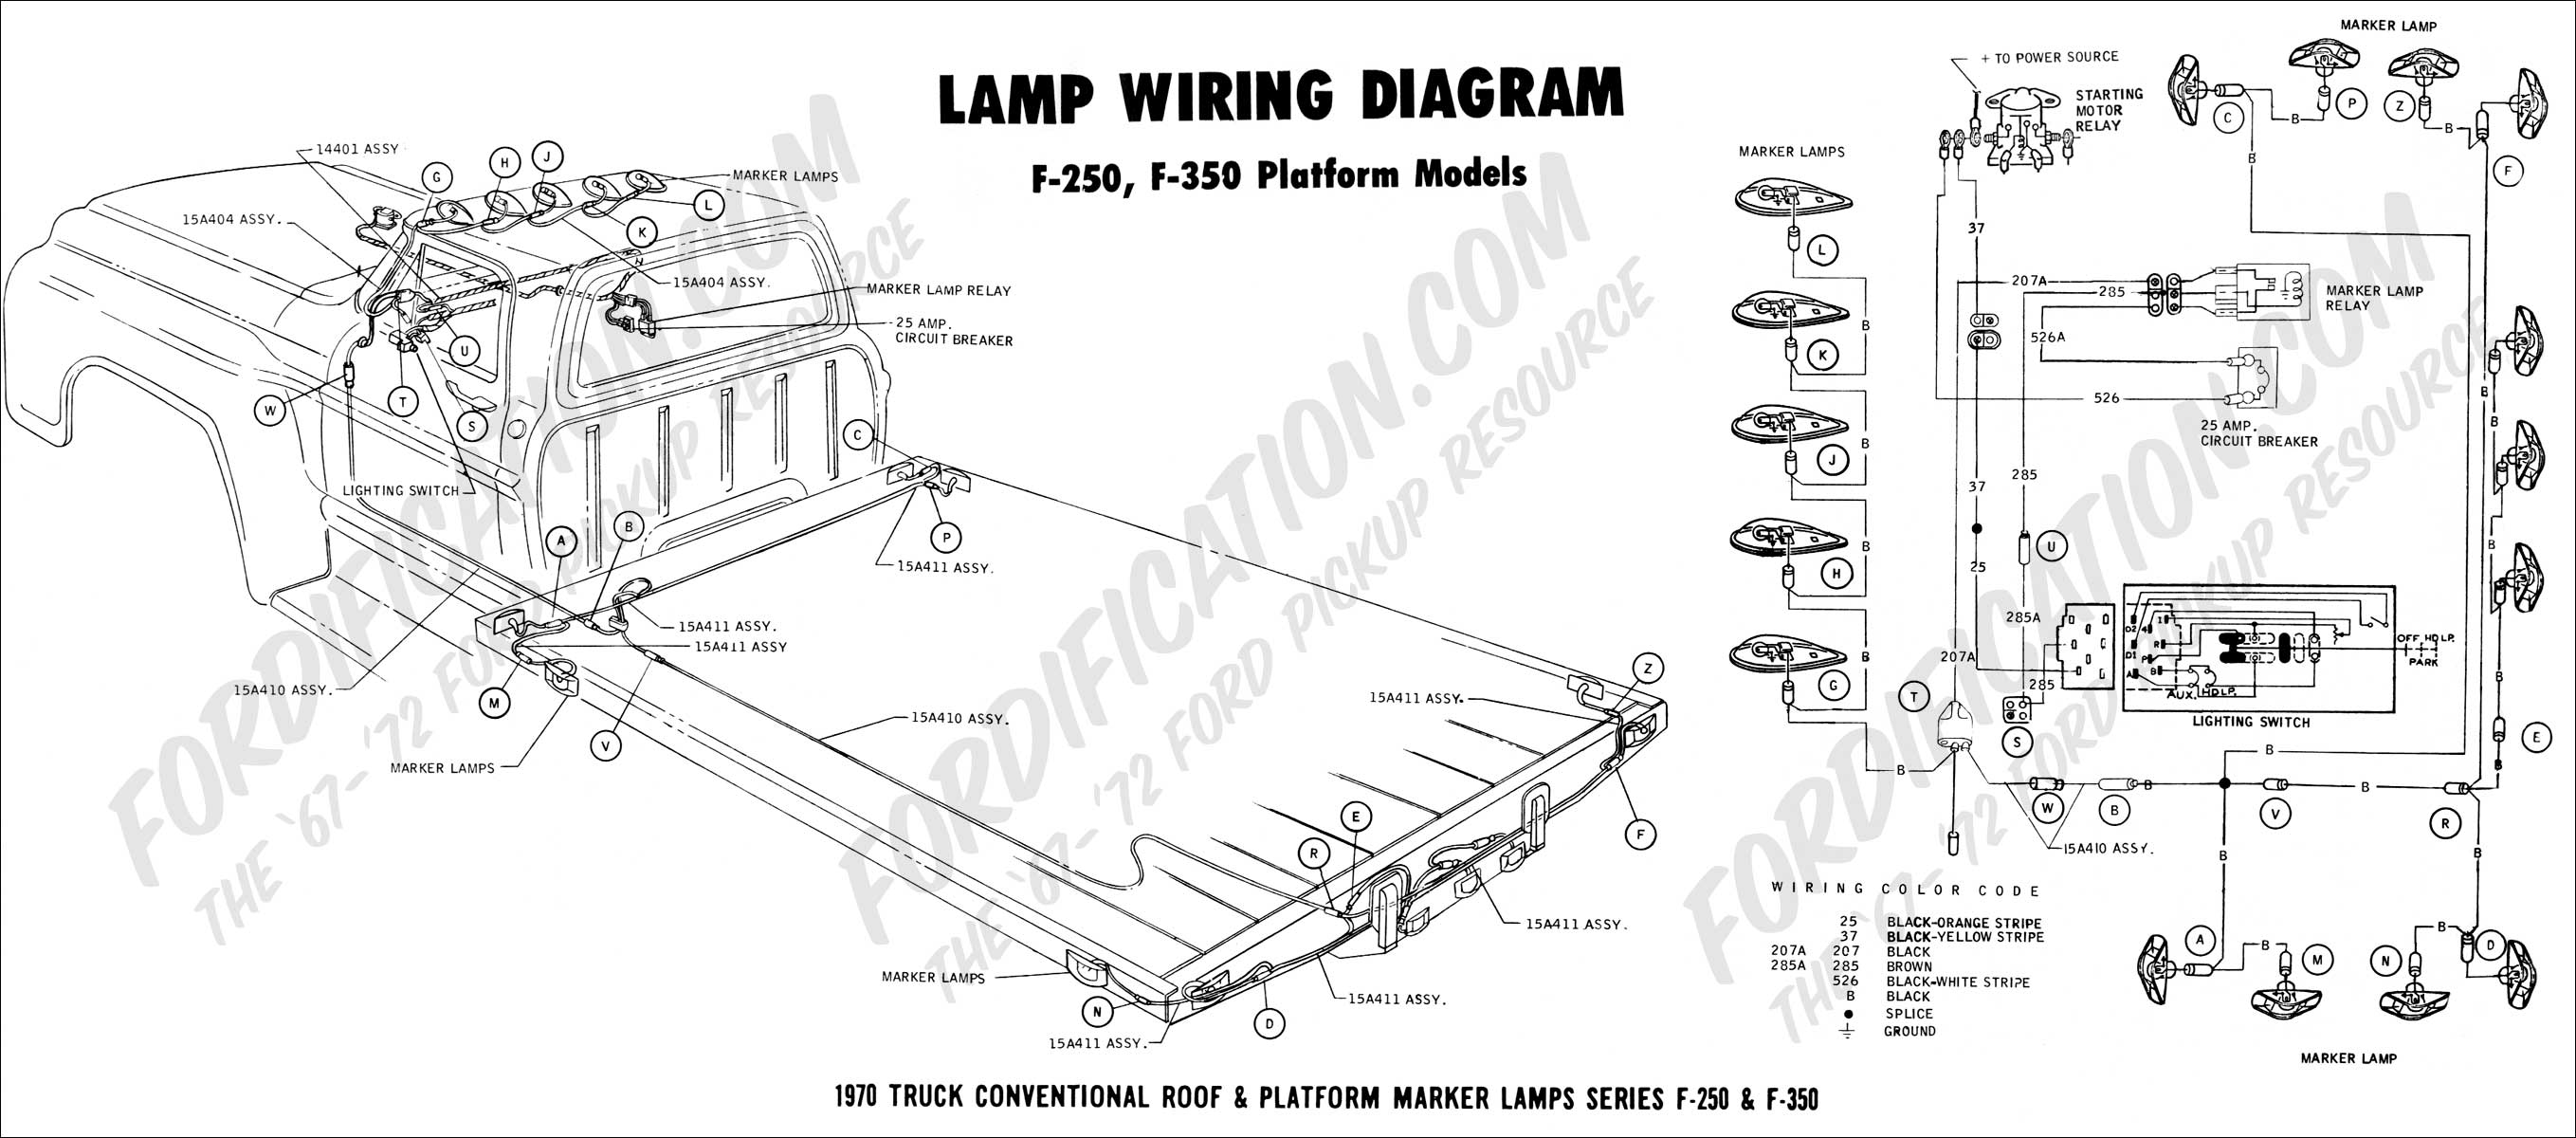 68 Camaro Light Switch Wiring Diagram